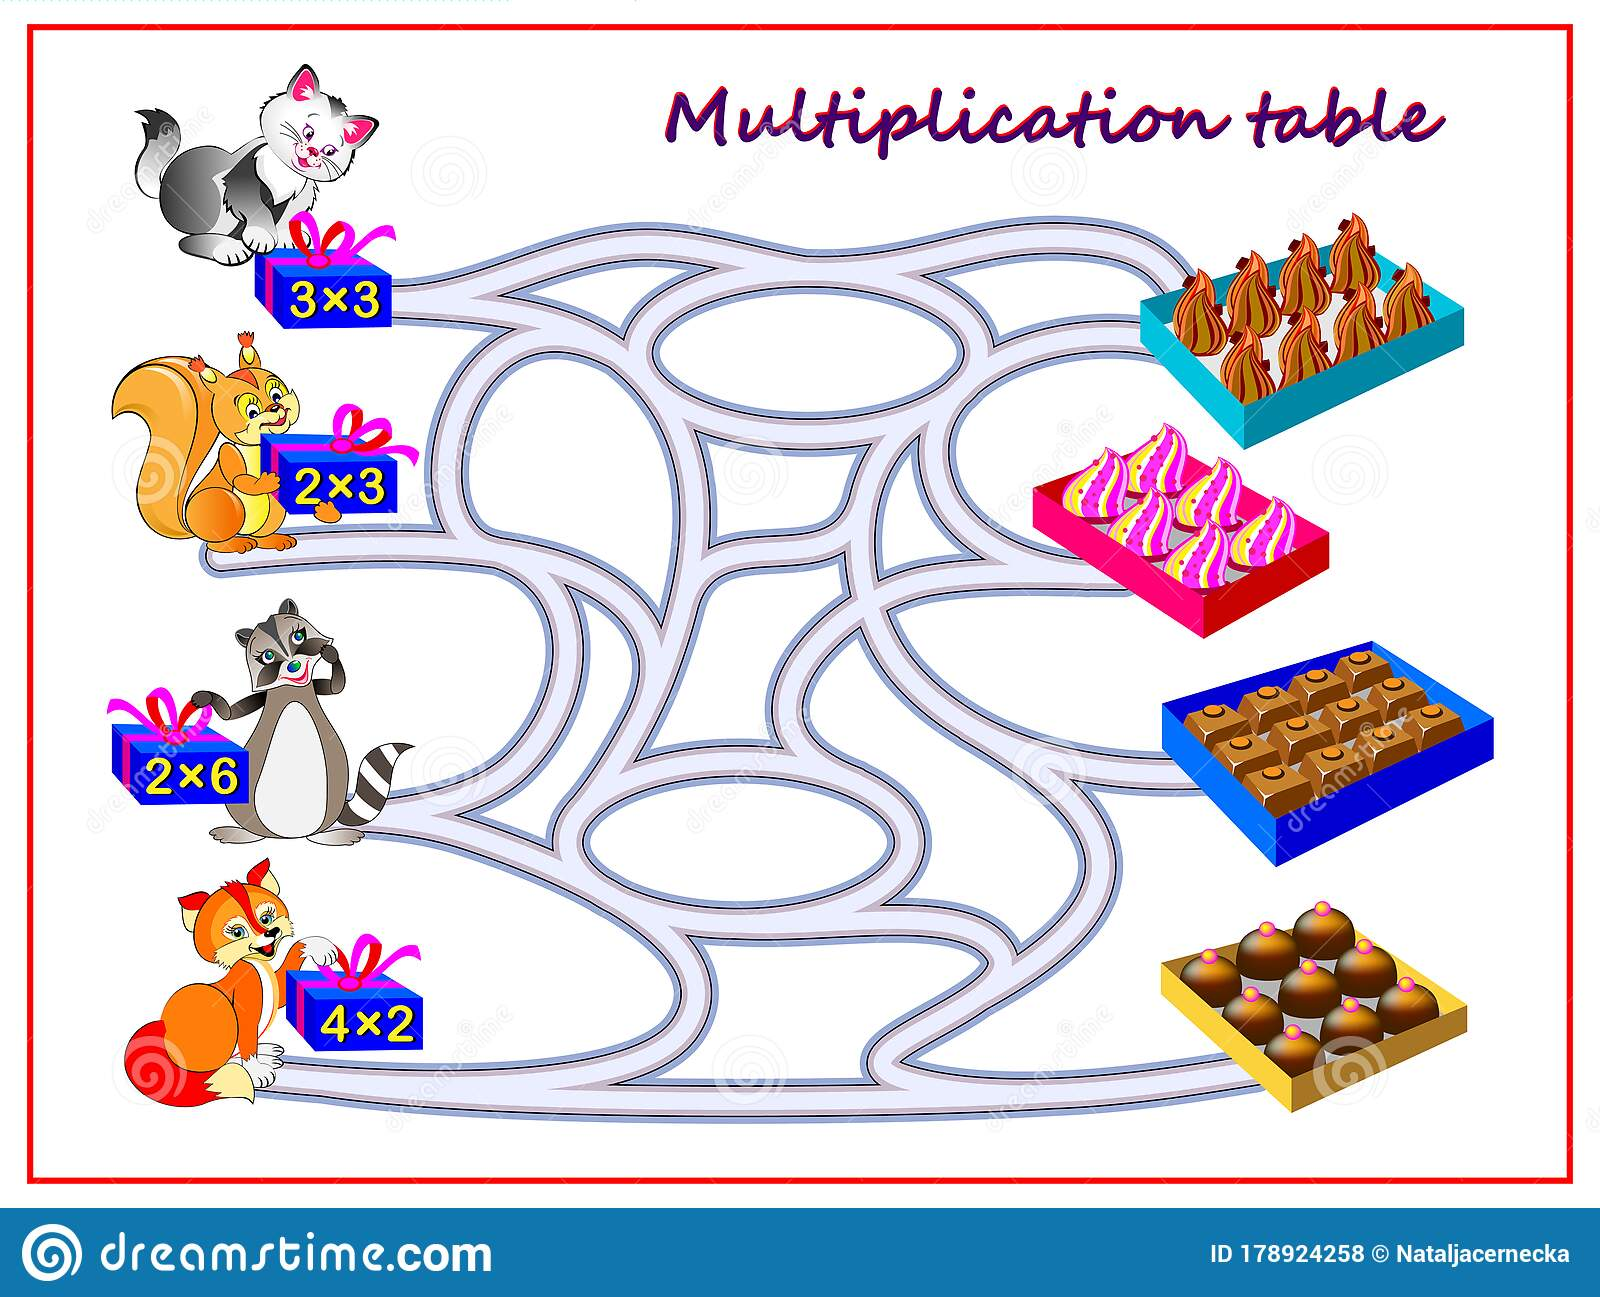 Multiplication Table With Labyrinth For Kids Count The